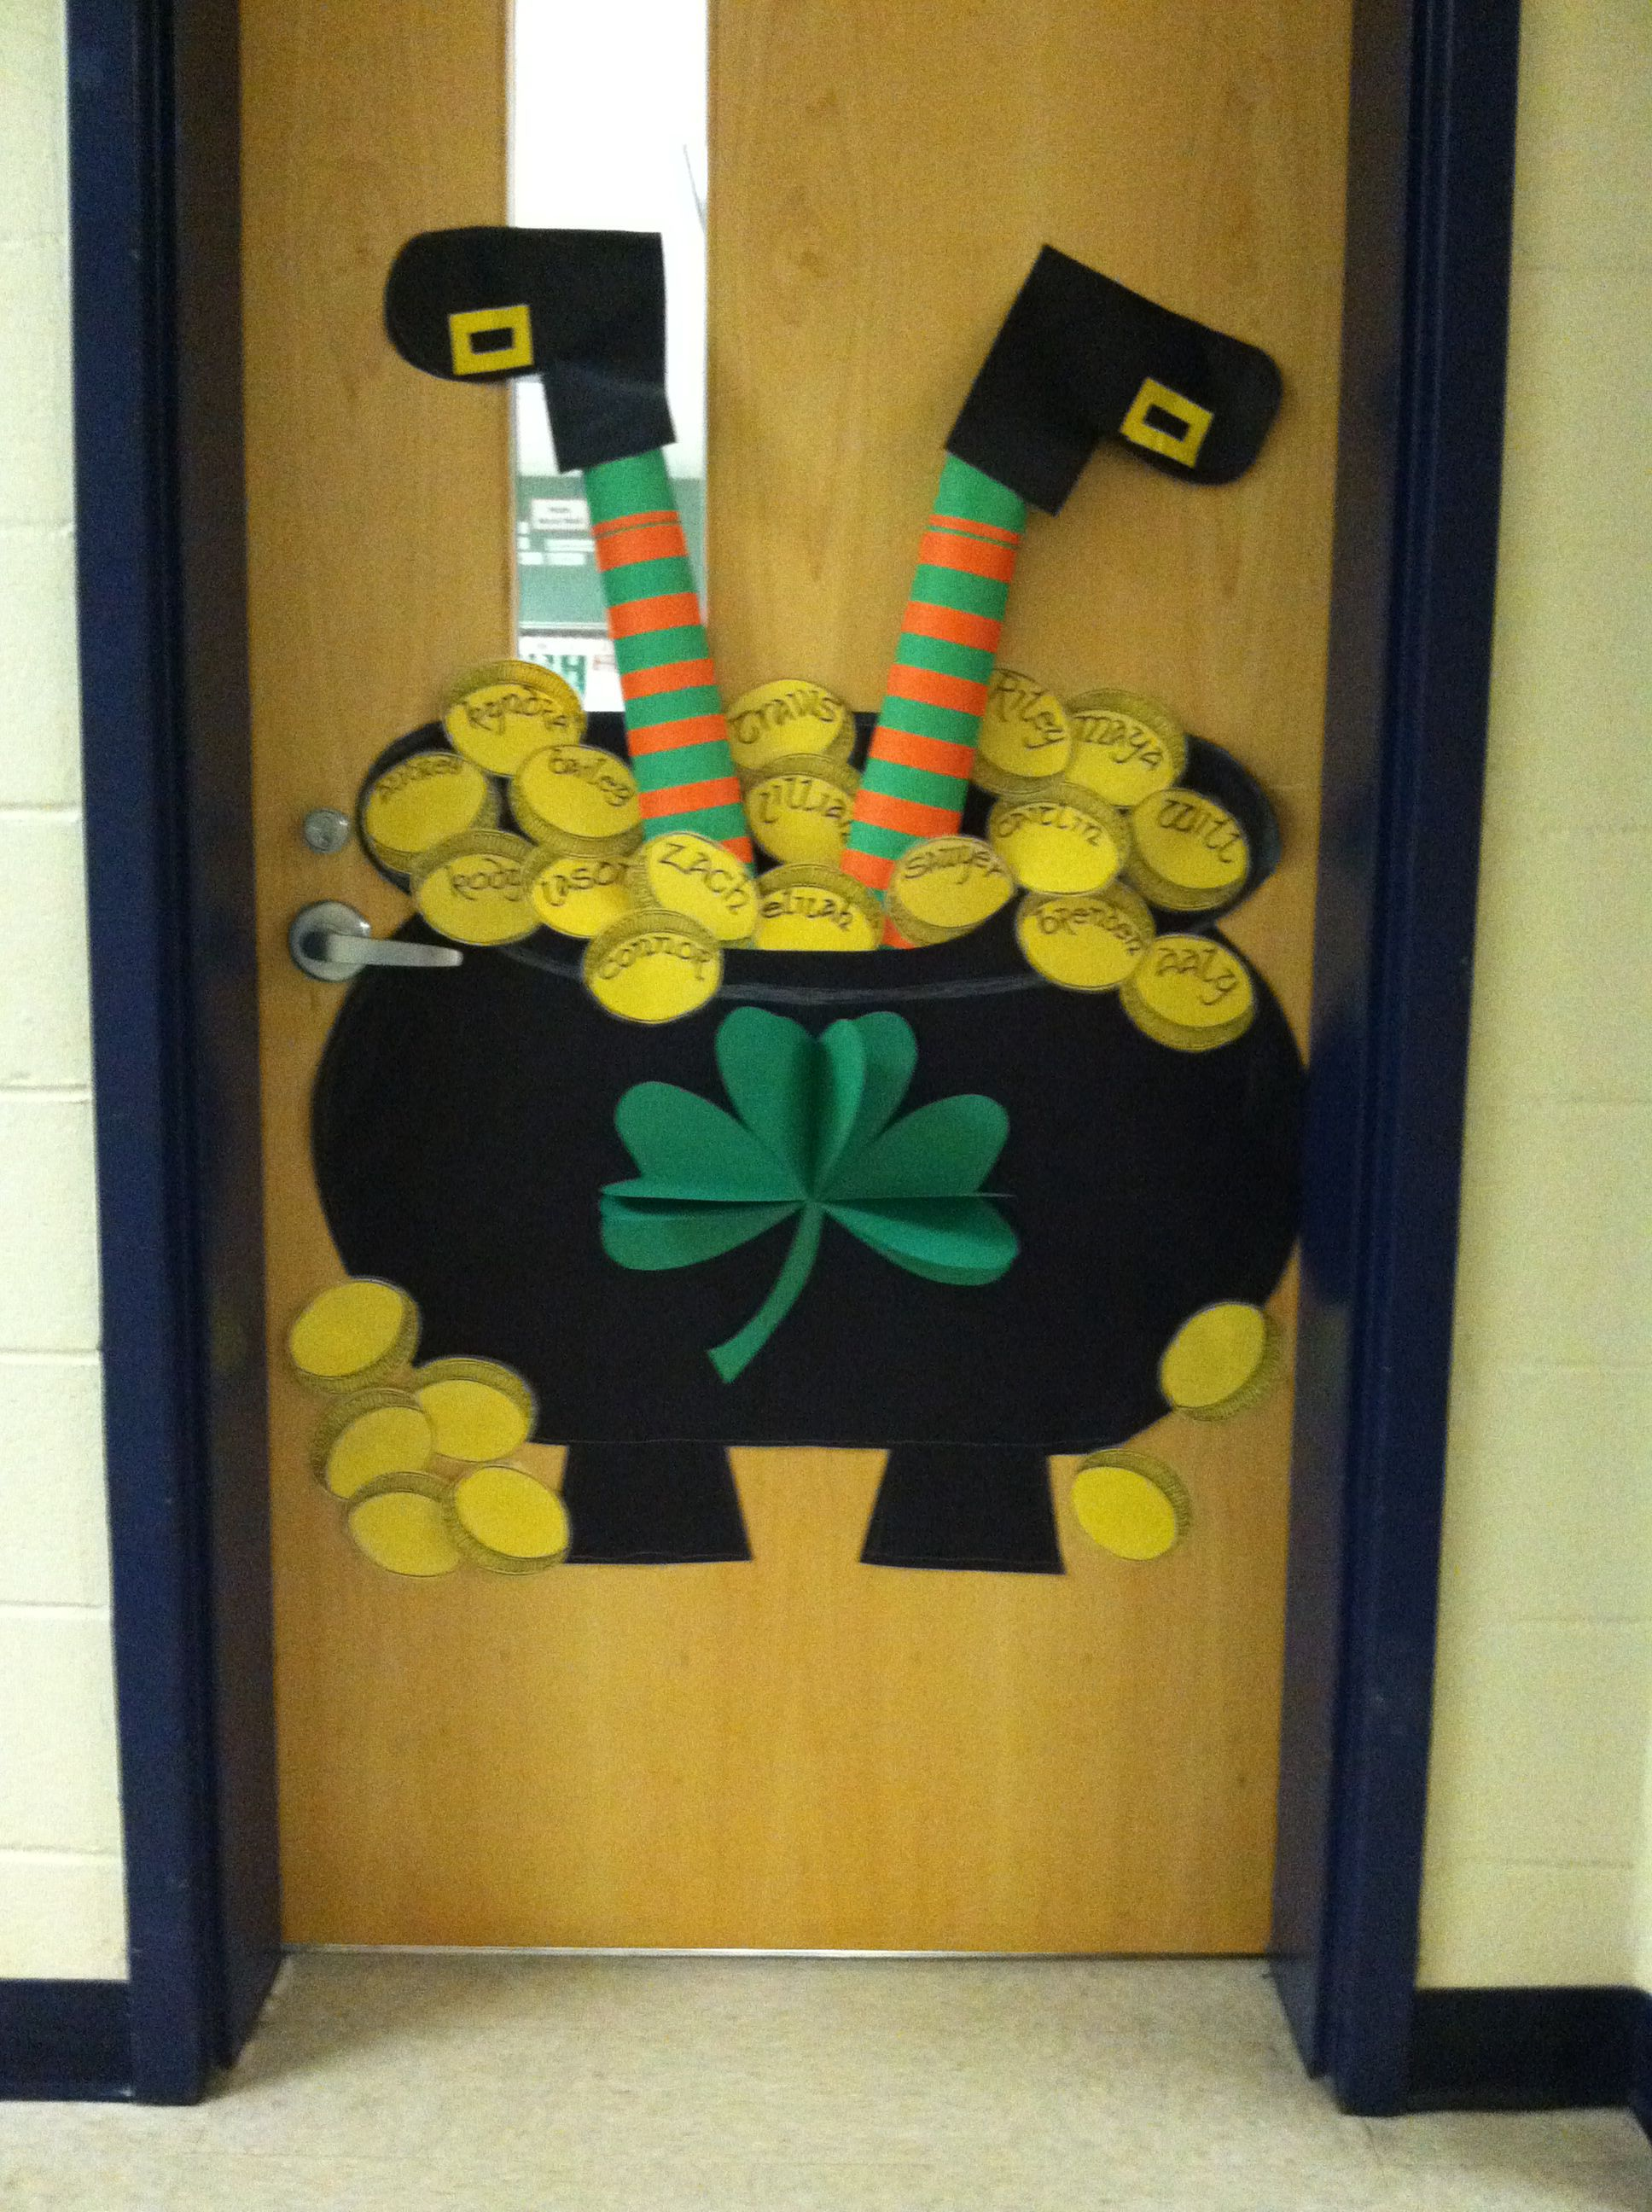 on decor patricks s chic st patrick decorations a easy day shoestring decorating by